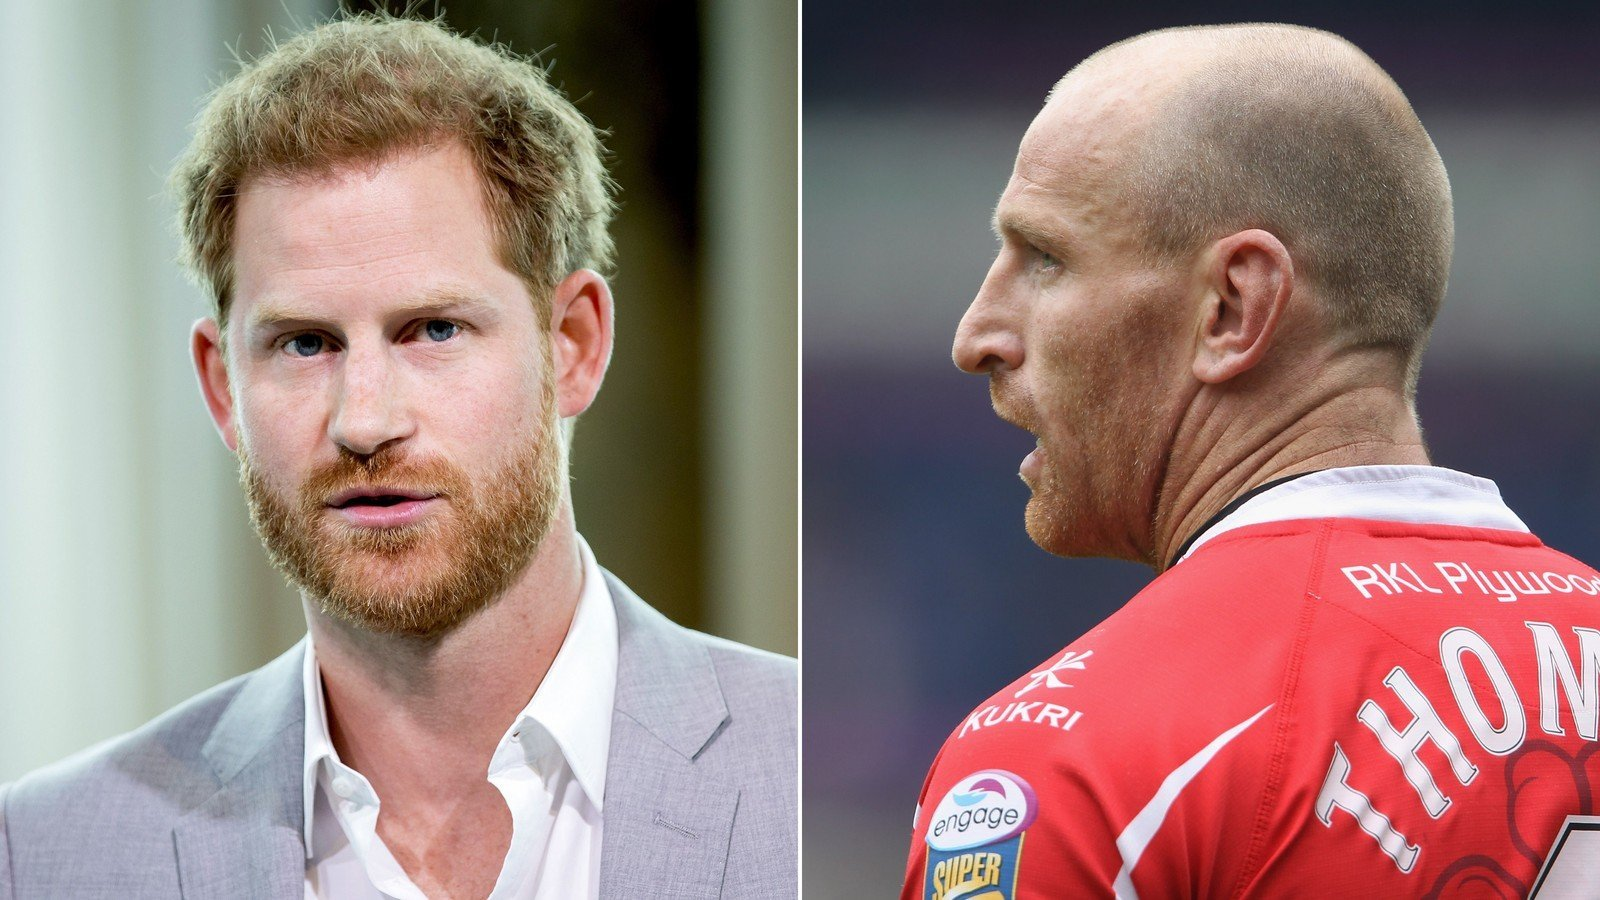 Prince Harry praises gay rugby star forced to disclose HIV status